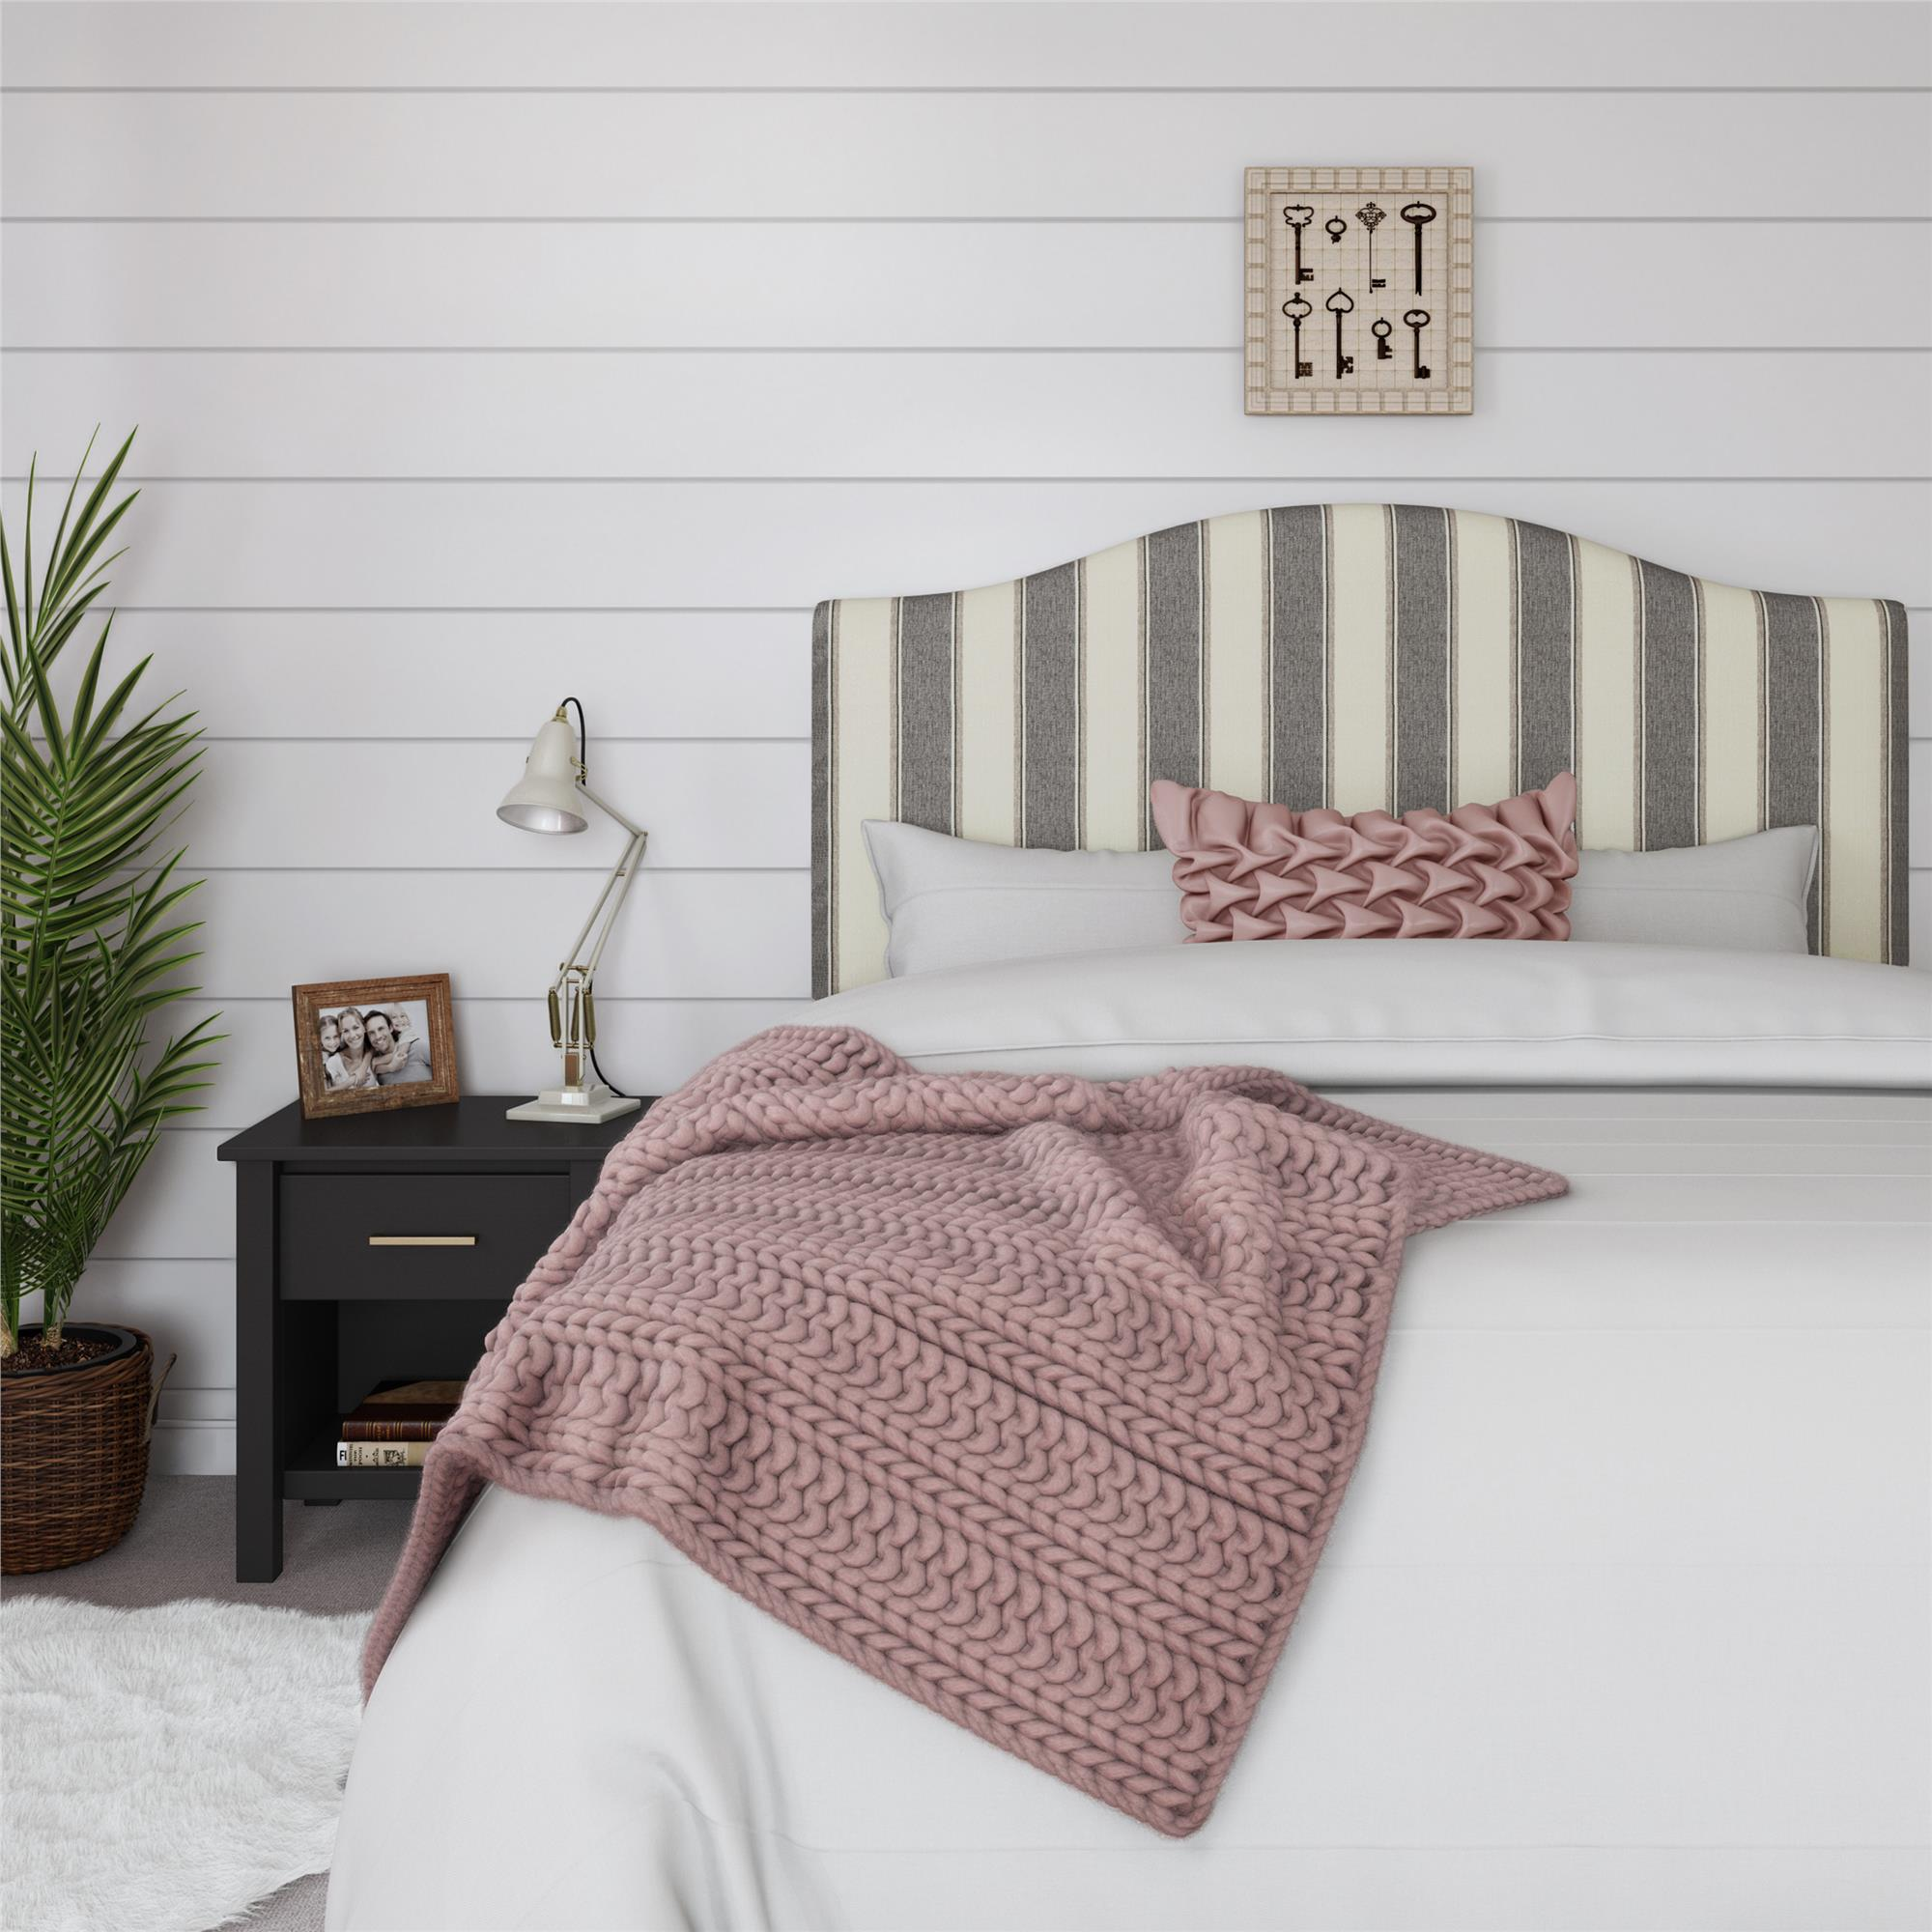 Better Homes and Gardens Grayson Striped Full/Queen Linen Upholstered Headboard, Multiple Colors